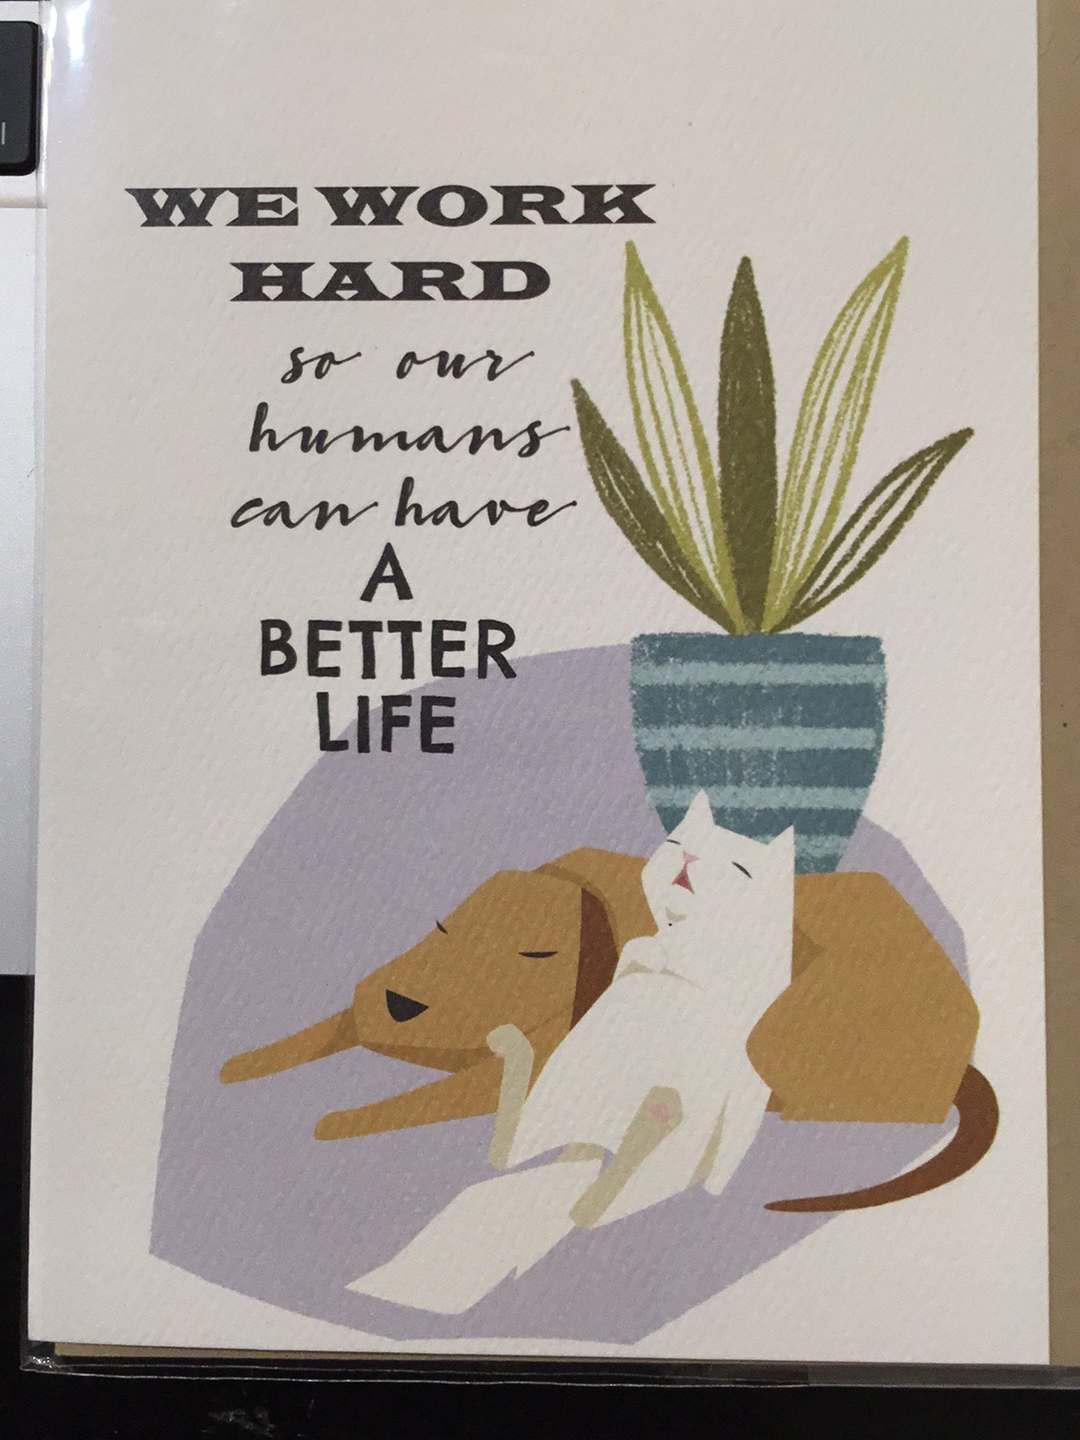 We work hard birthday card